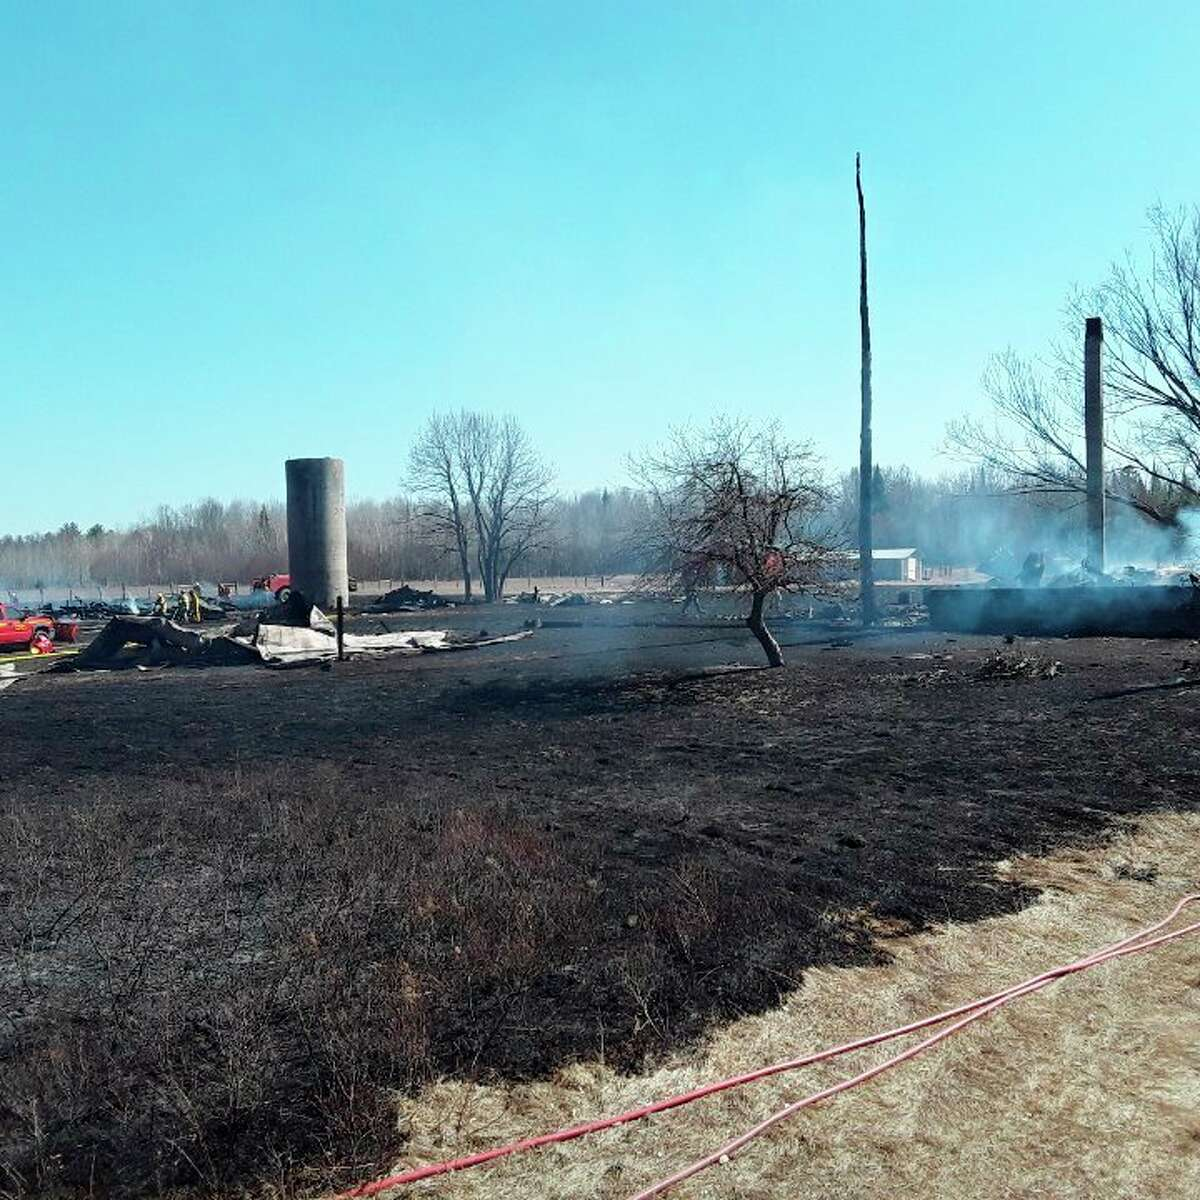 One fire that started this spring as a brush fire in Norman Township spread and led to a loss of five of the seven buildings nearby. It also spread up to neighboring structures across the road, required between 83,000-85,000 gallons of water and seven first response agencies to contain. In that case, a centennial farm on Dorothy Road southeast of Wellston was one of the buildings lost to the fire.